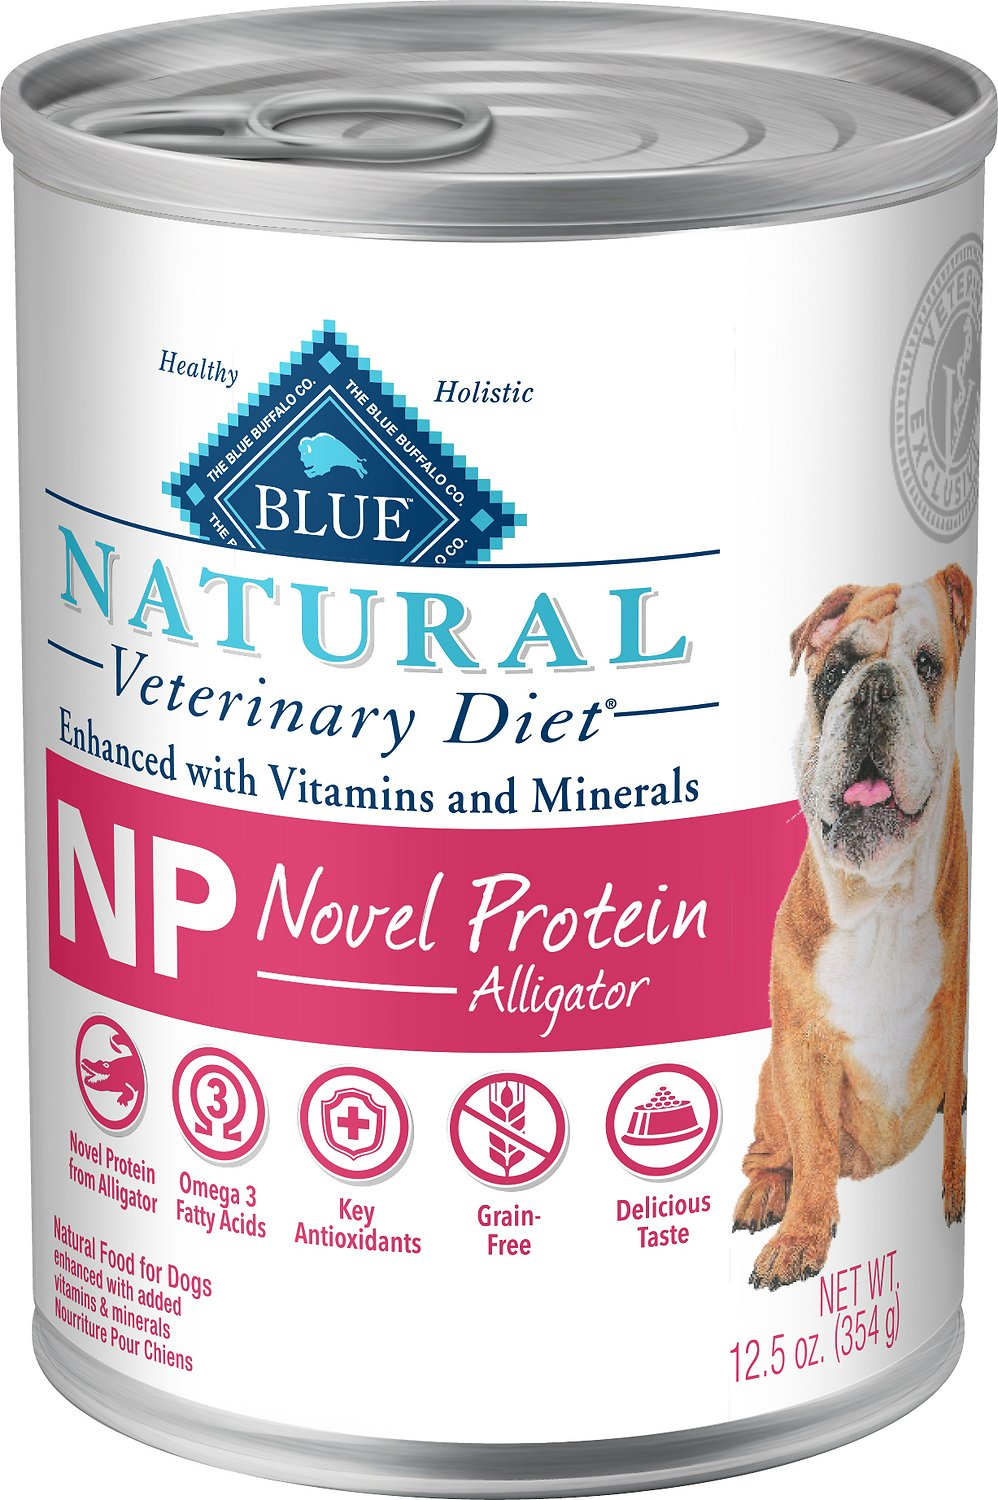 Blue Buffalo Natural Veterinary Diet NP Novel Protein Alligator Grain-Free Canned Dog Food, 12.5-oz